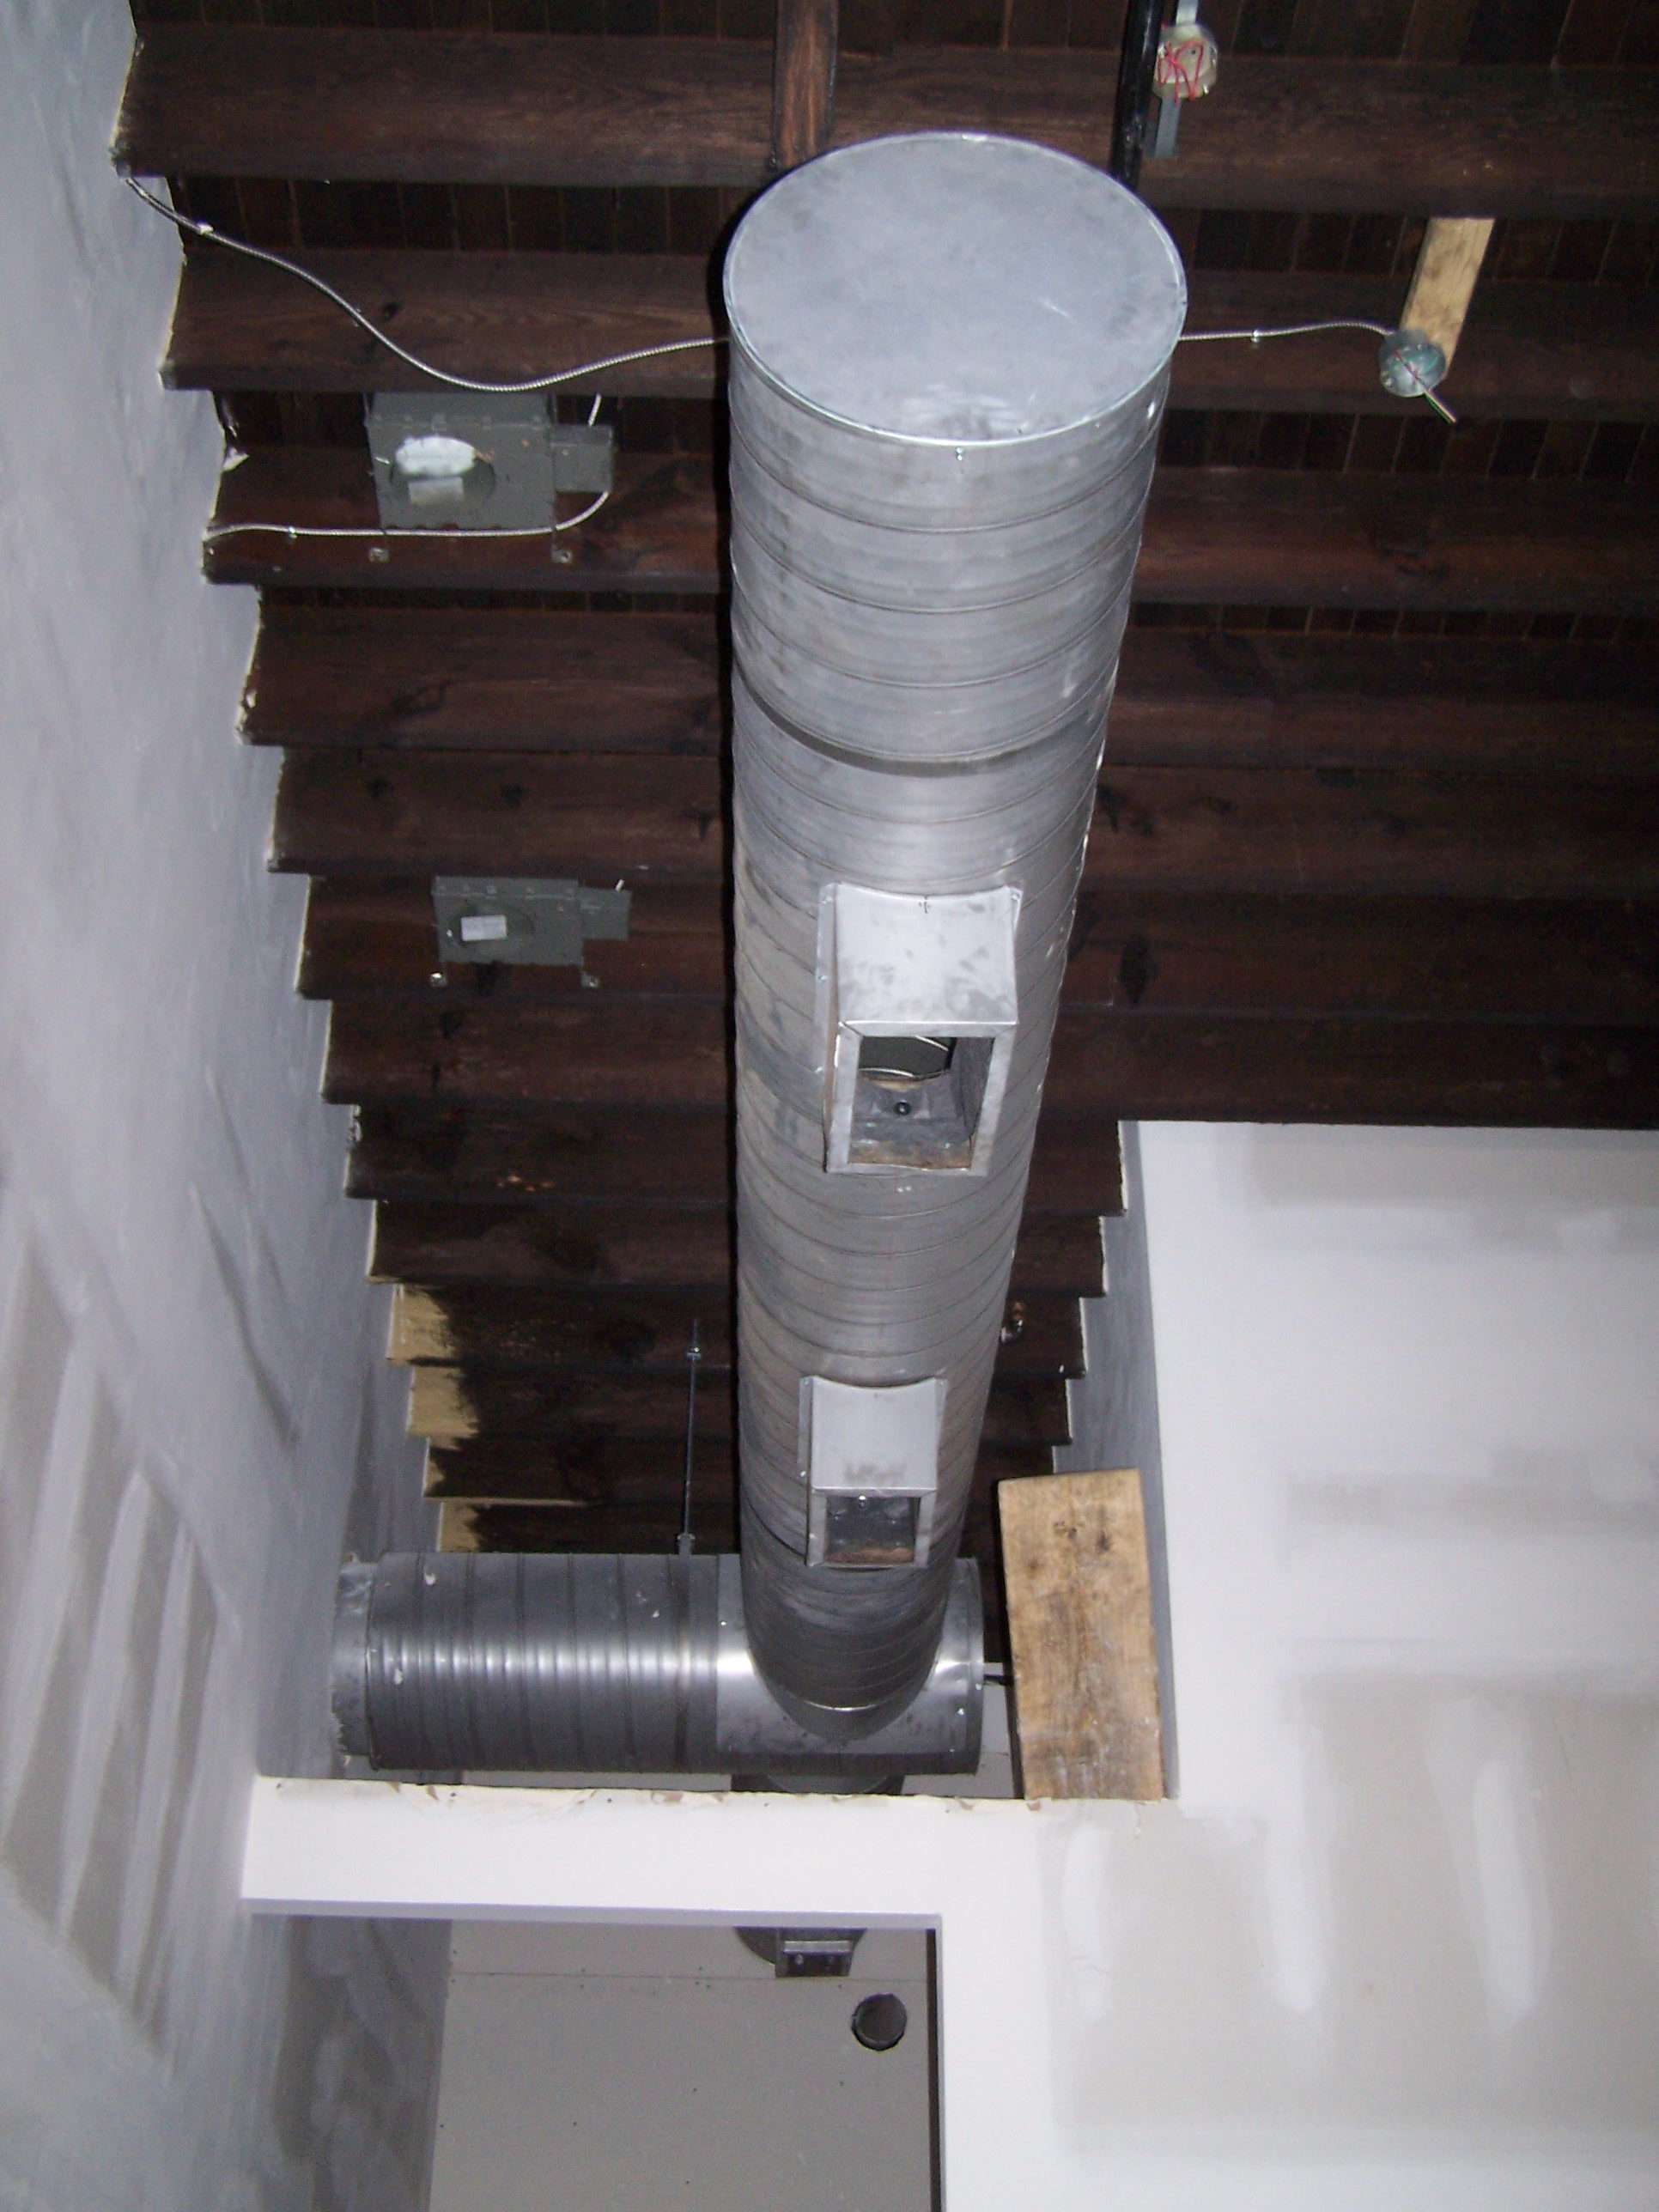 Exposed spiral ductwork